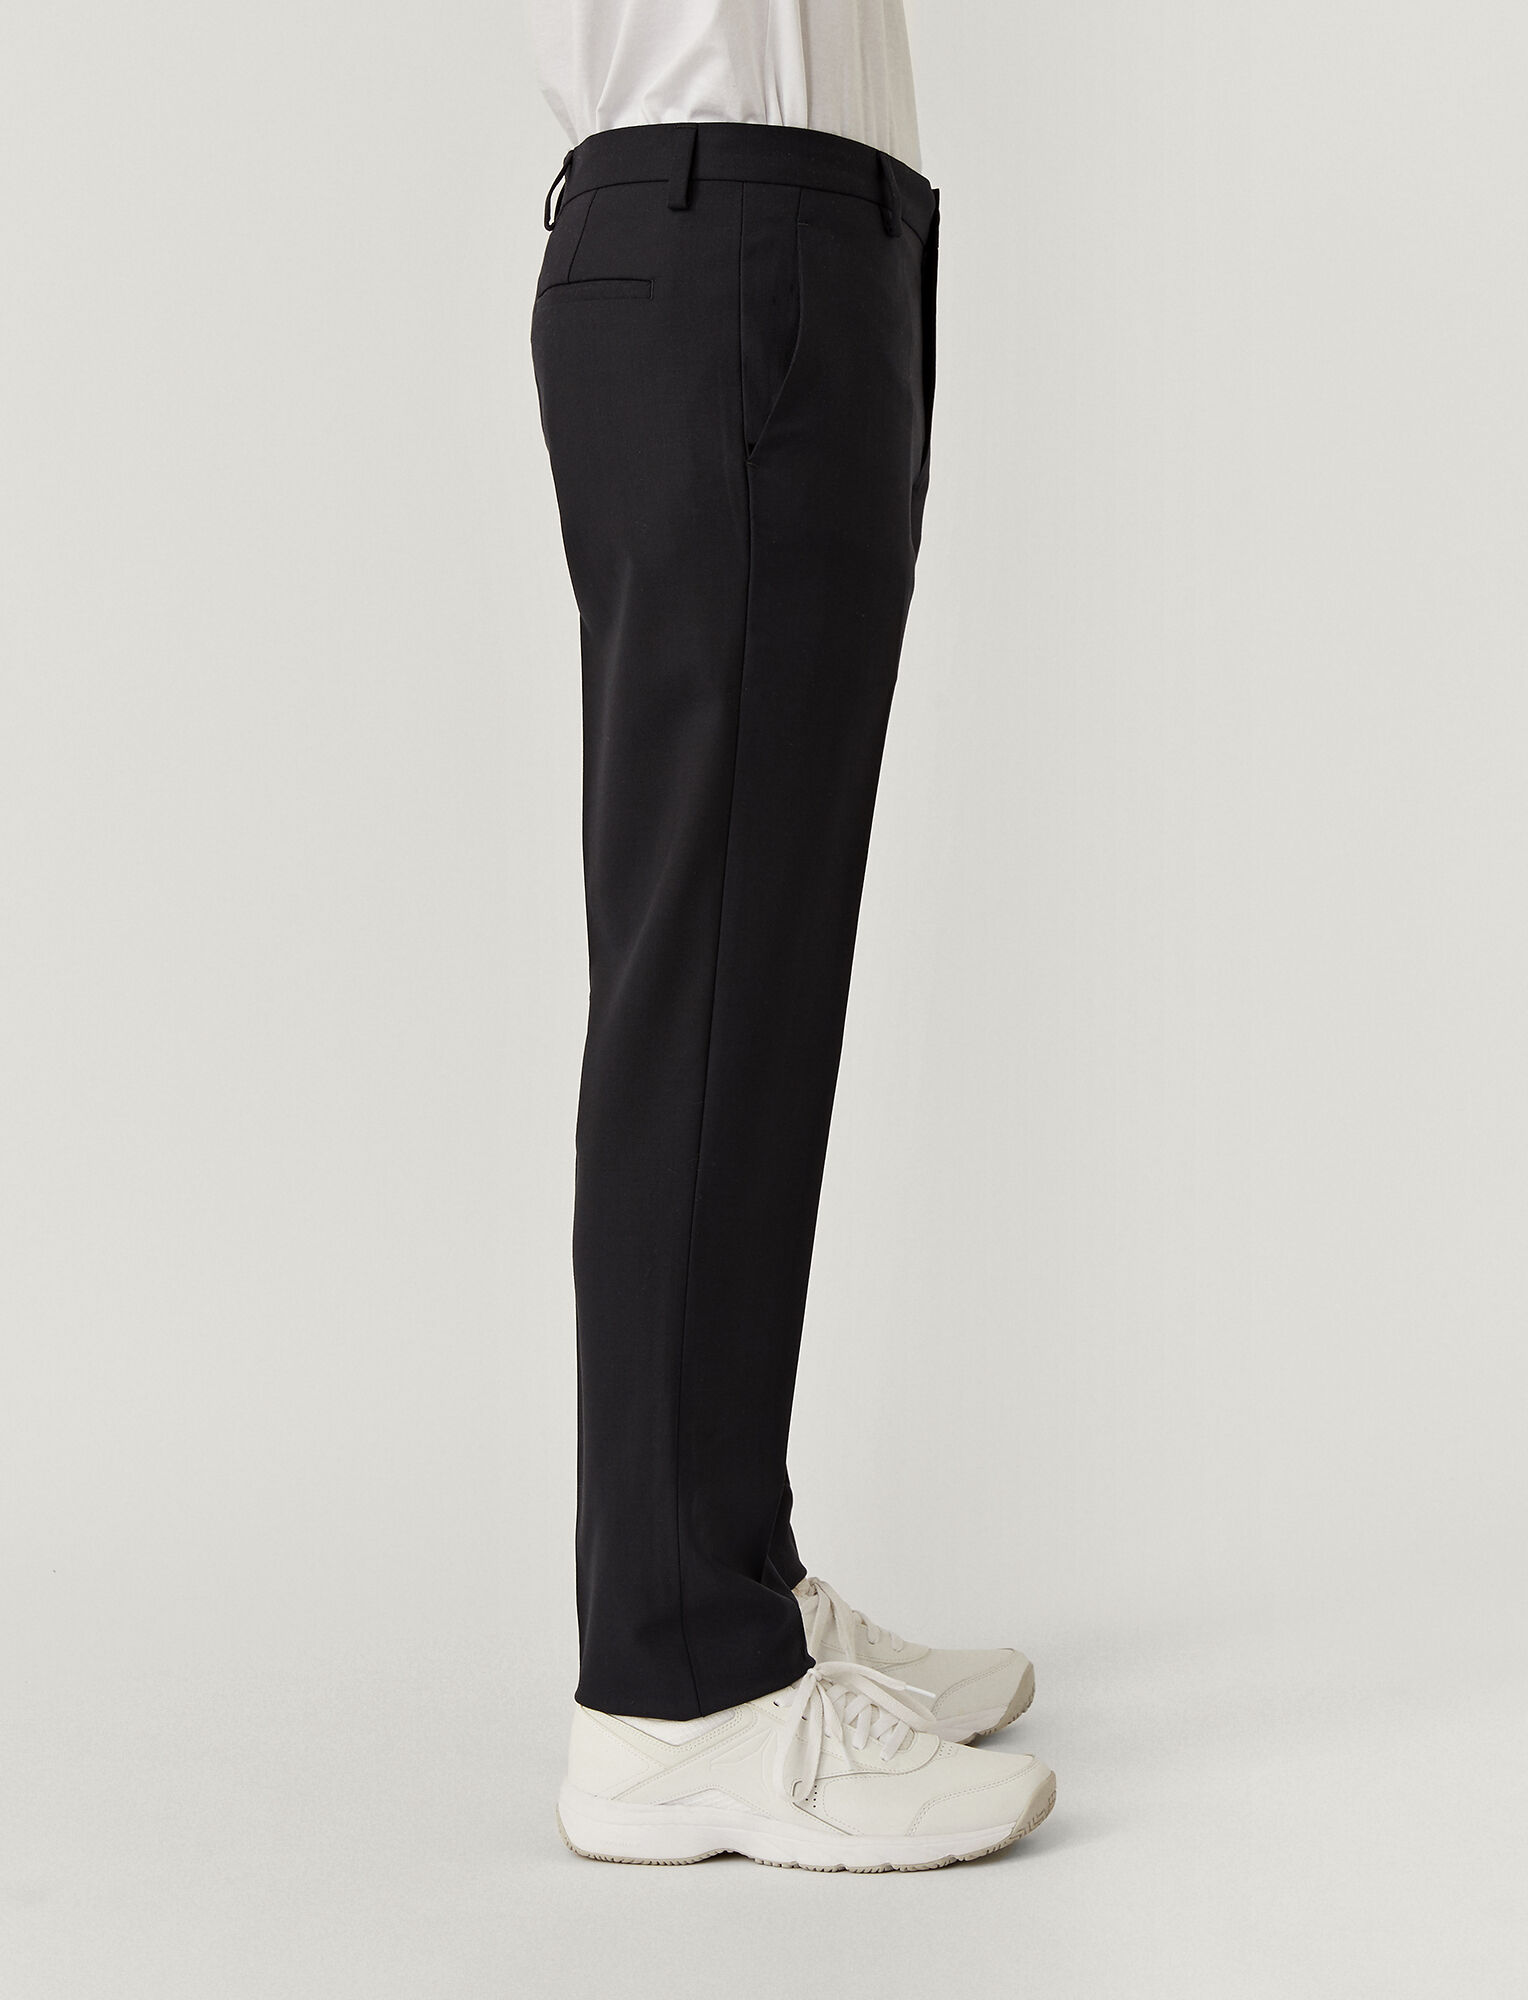 Joseph, Techno Wool Stretch Jack Trousers, in NAVY